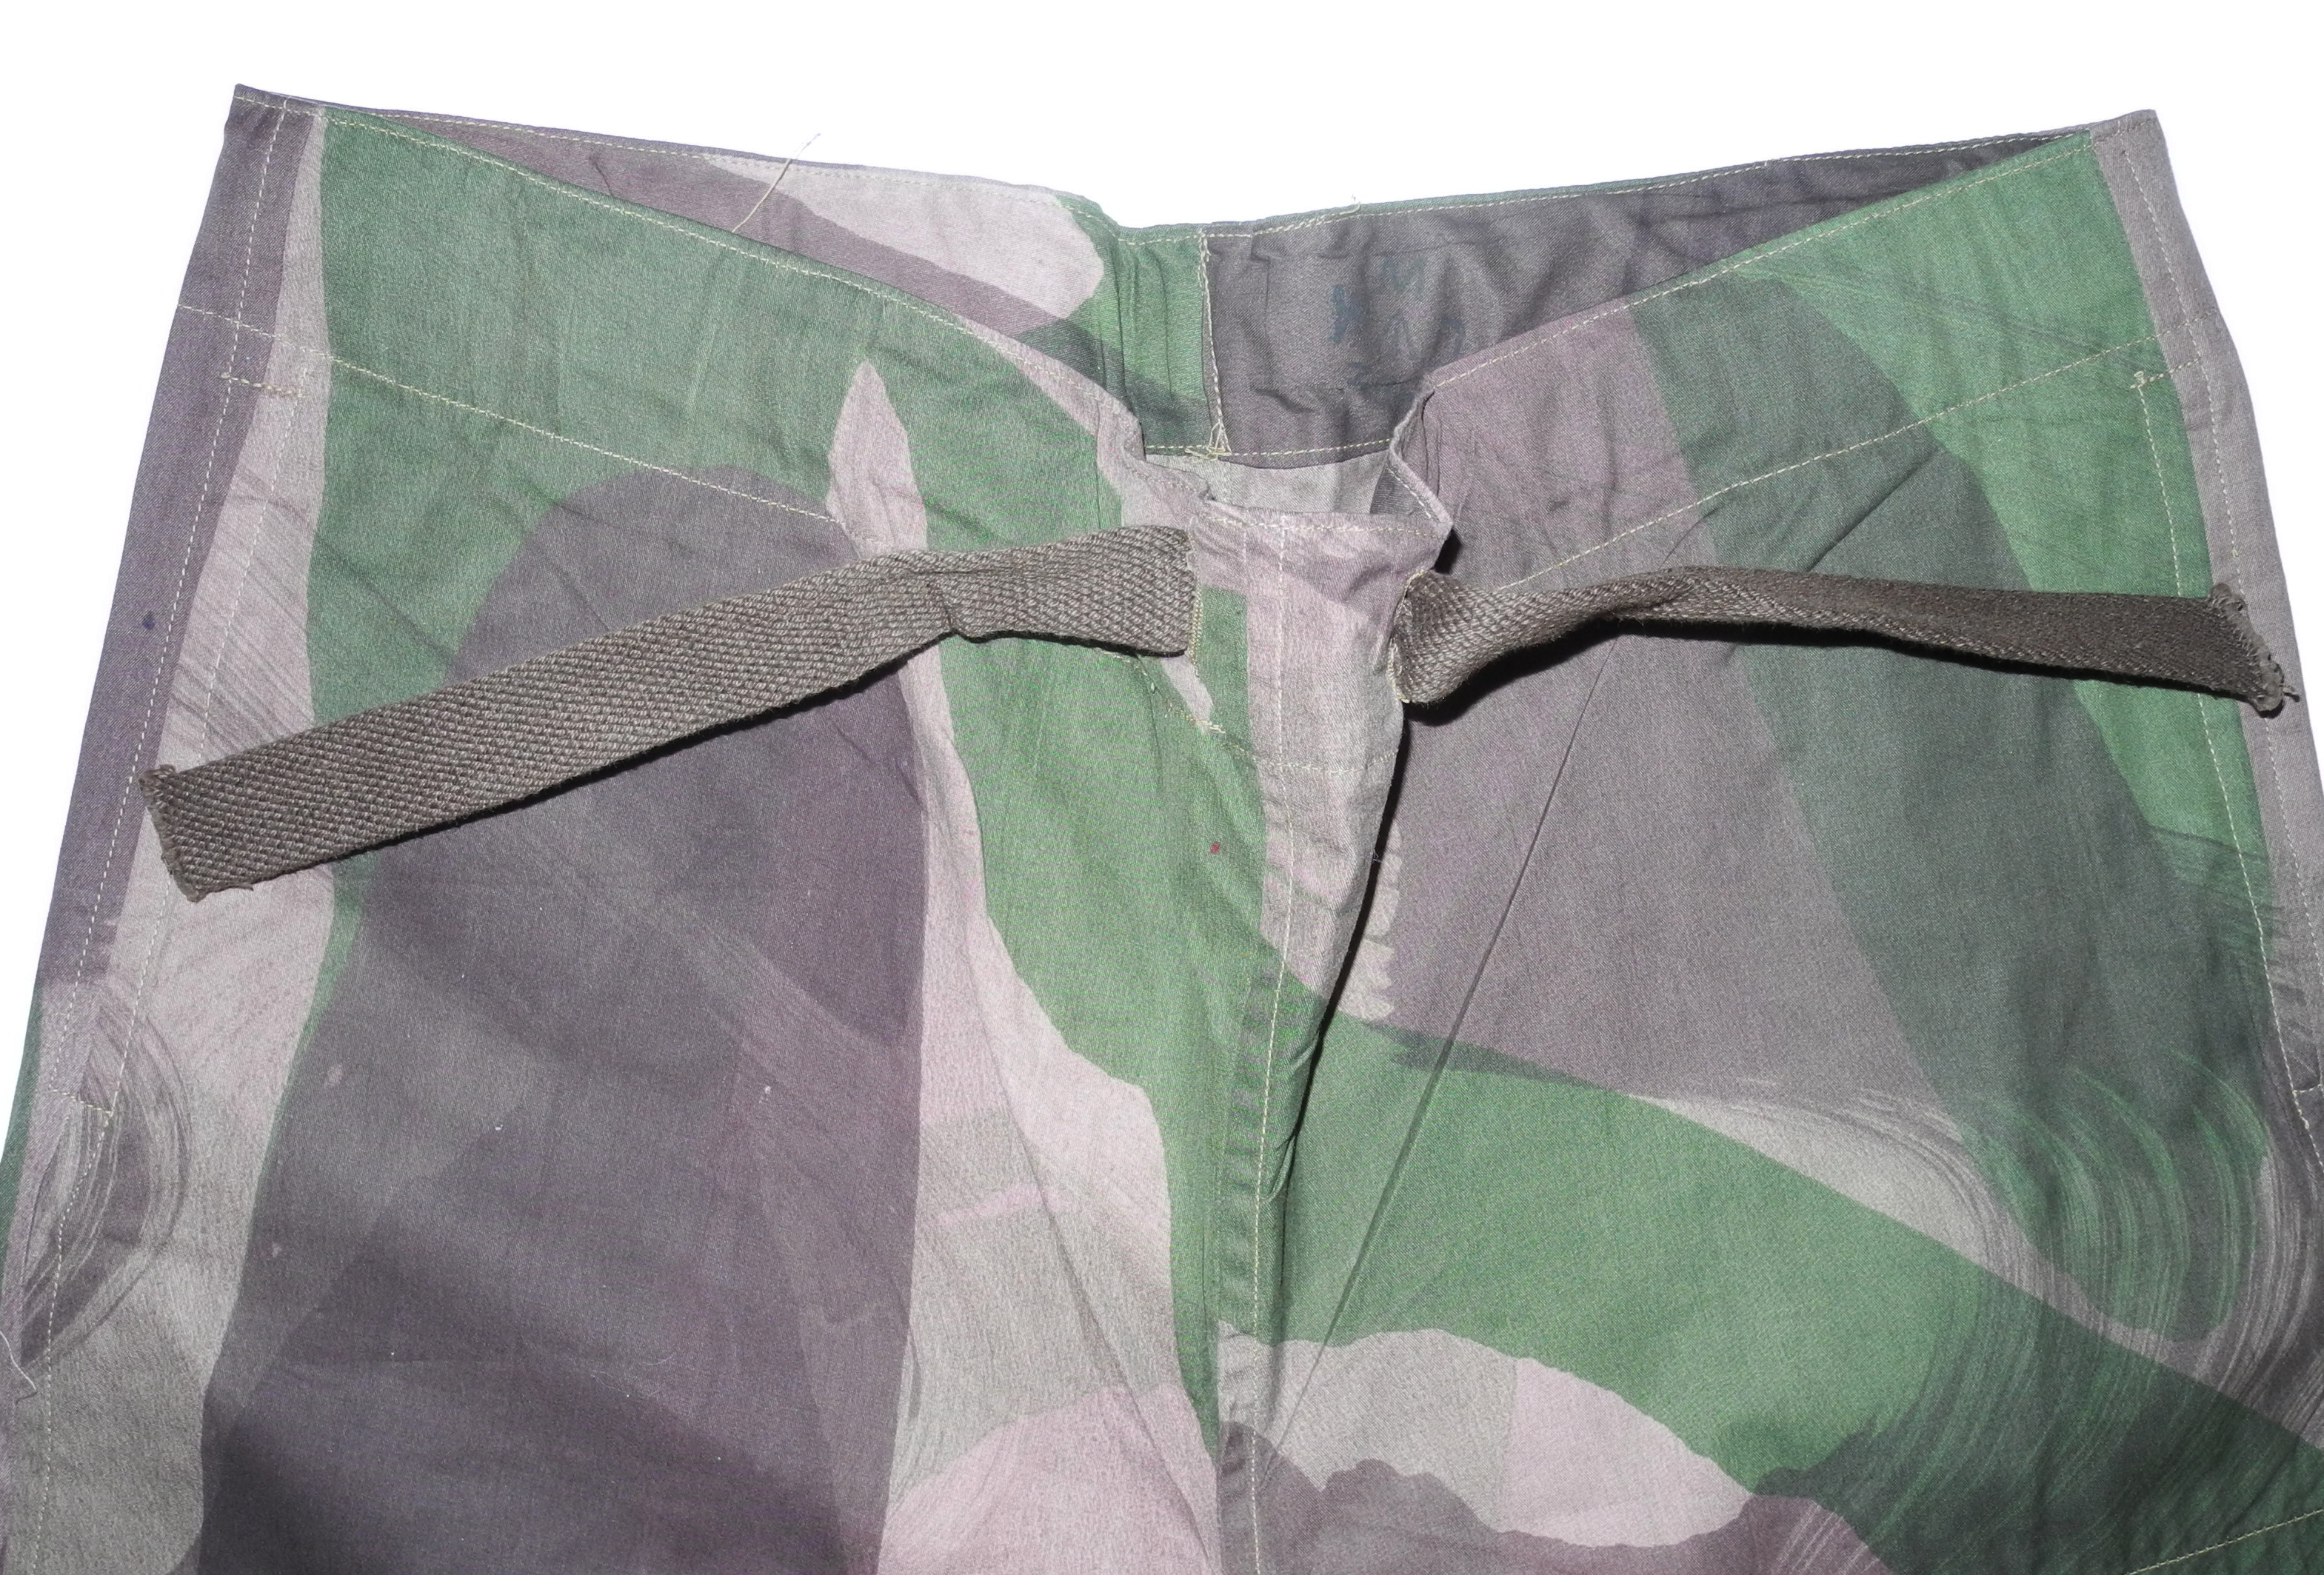 SAS Windproof trousers dated 1943